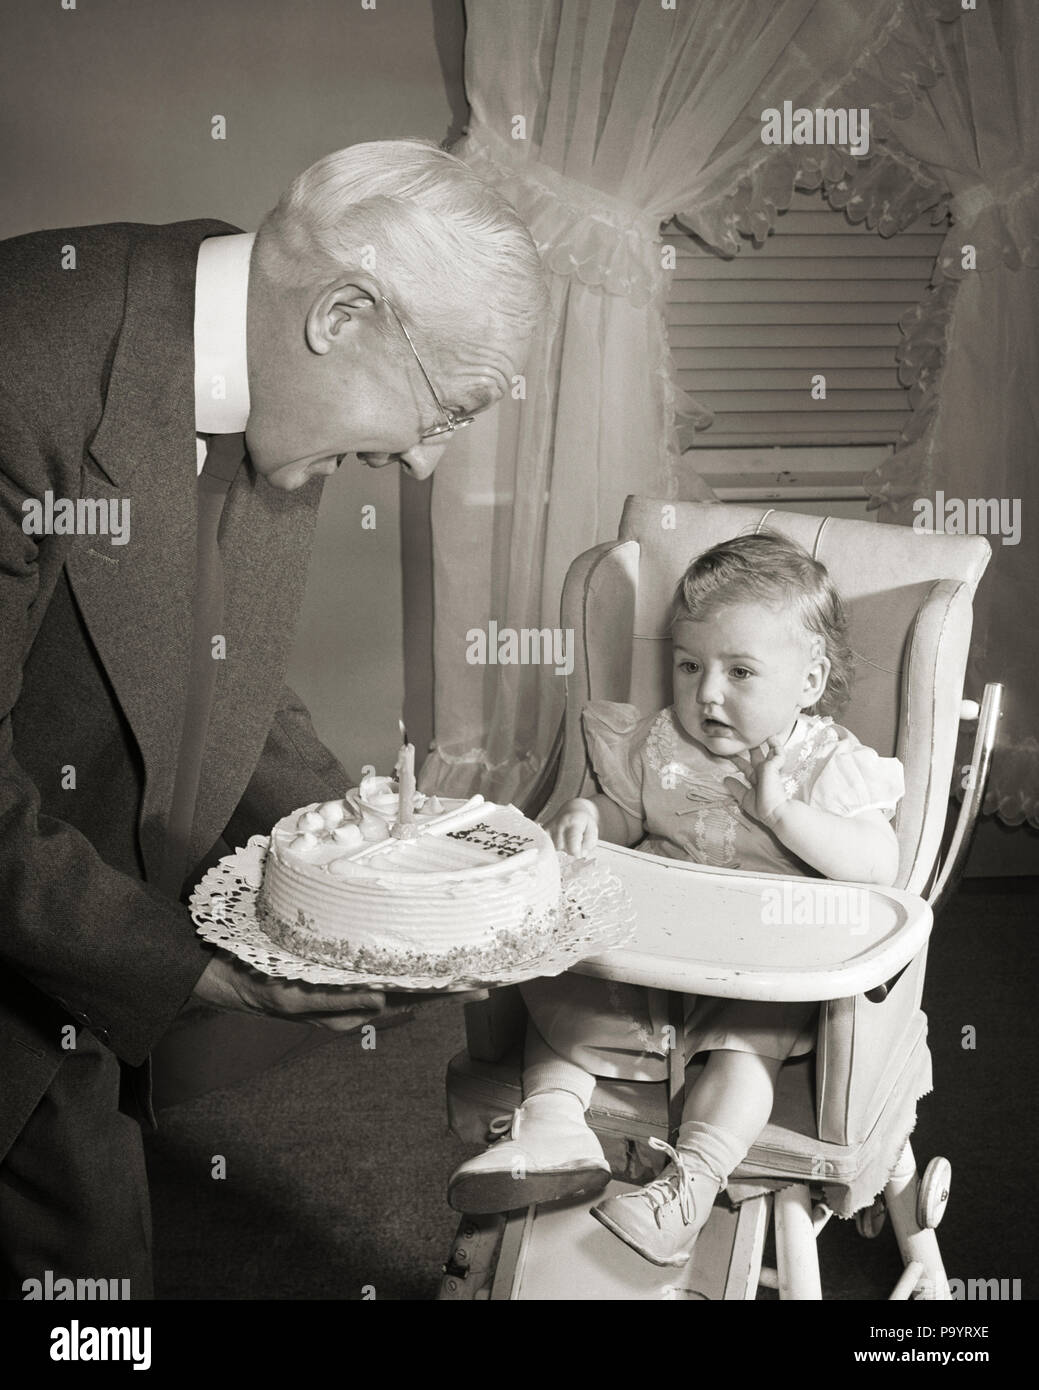 1950s SMILING GRANDFATHER PRESENTING BIRTHDAY CAKE WITH ONE YEAR CANDLE TO GRANDDAUGHTER SITTING IN HIGHCHAIR